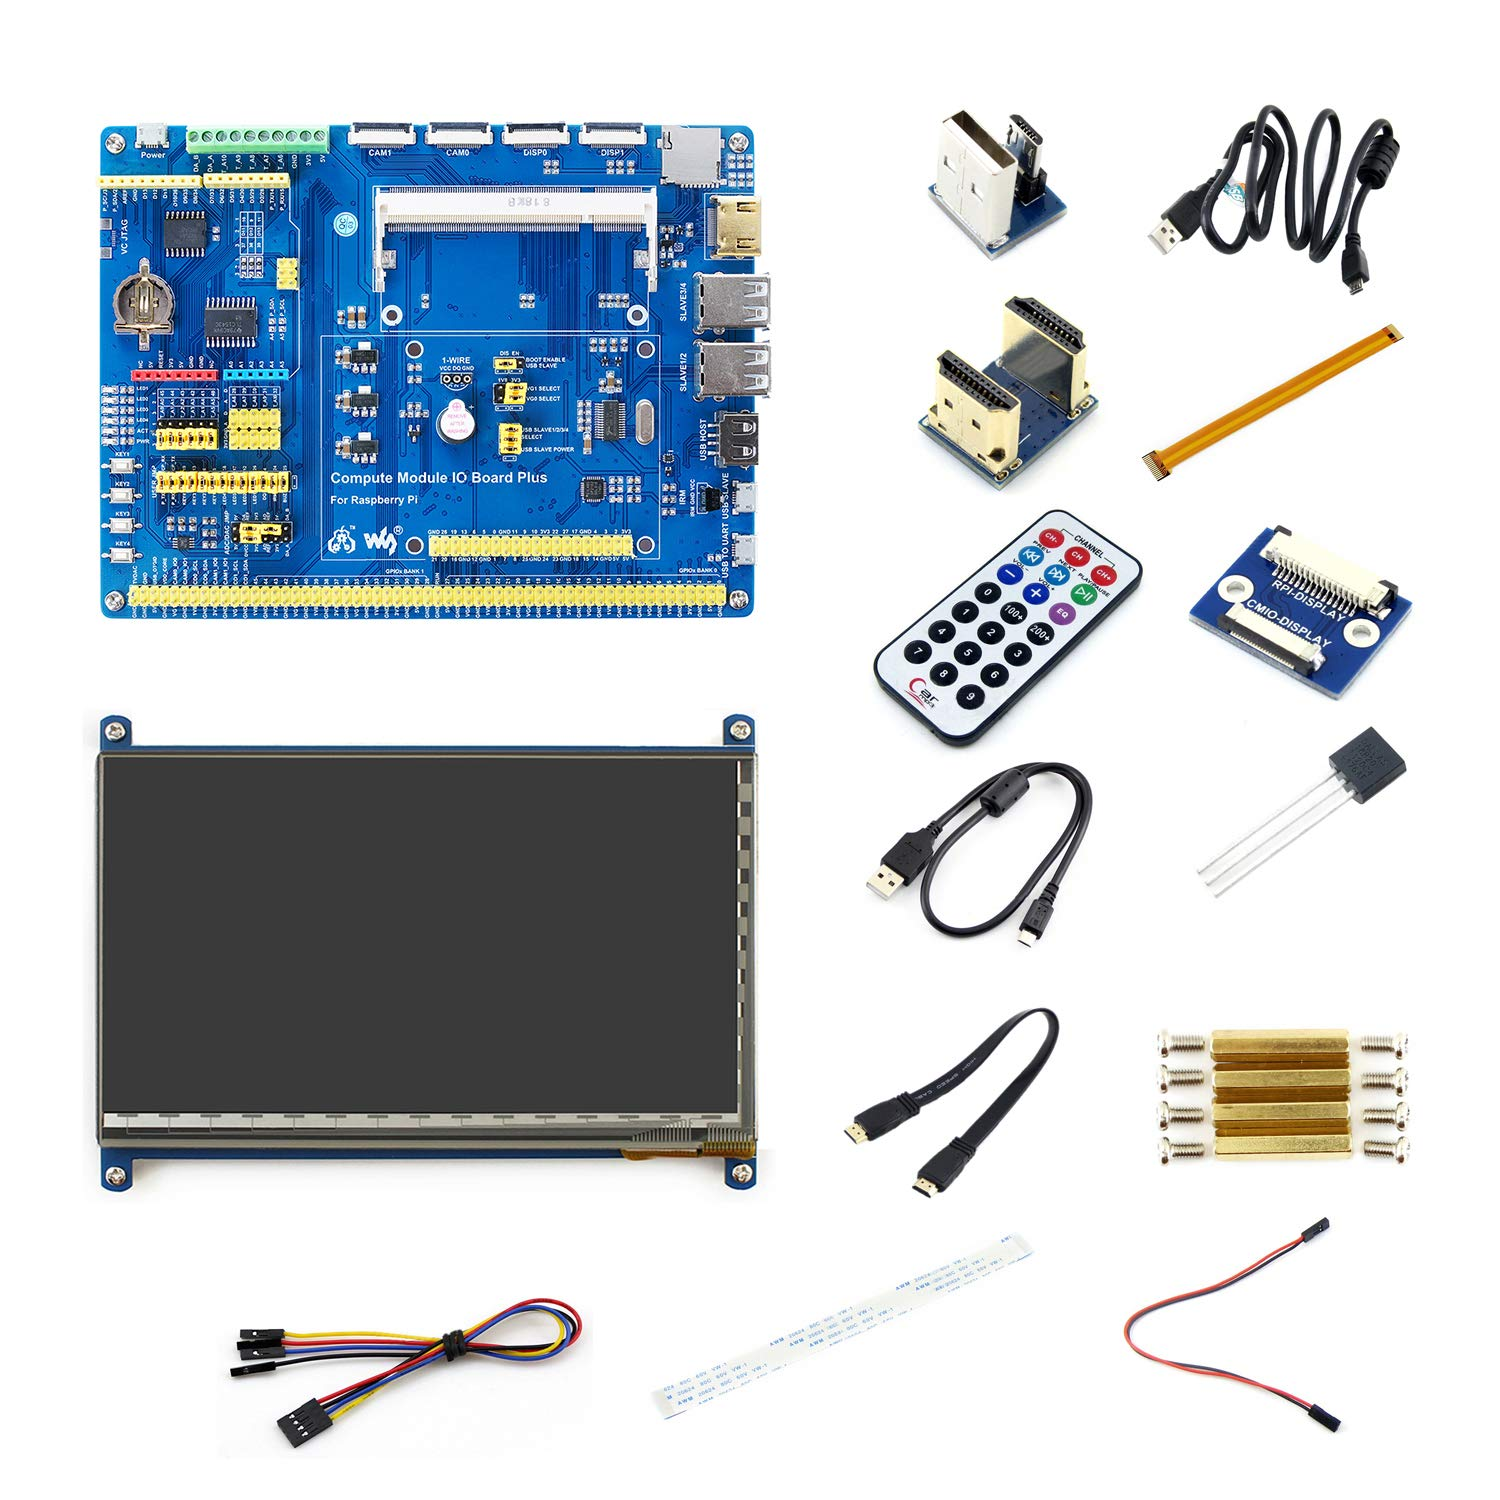 Stupendous Amazon Com Raspberry Pi Compute Module 3 Accessory Pack Evaluate Wiring 101 Swasaxxcnl